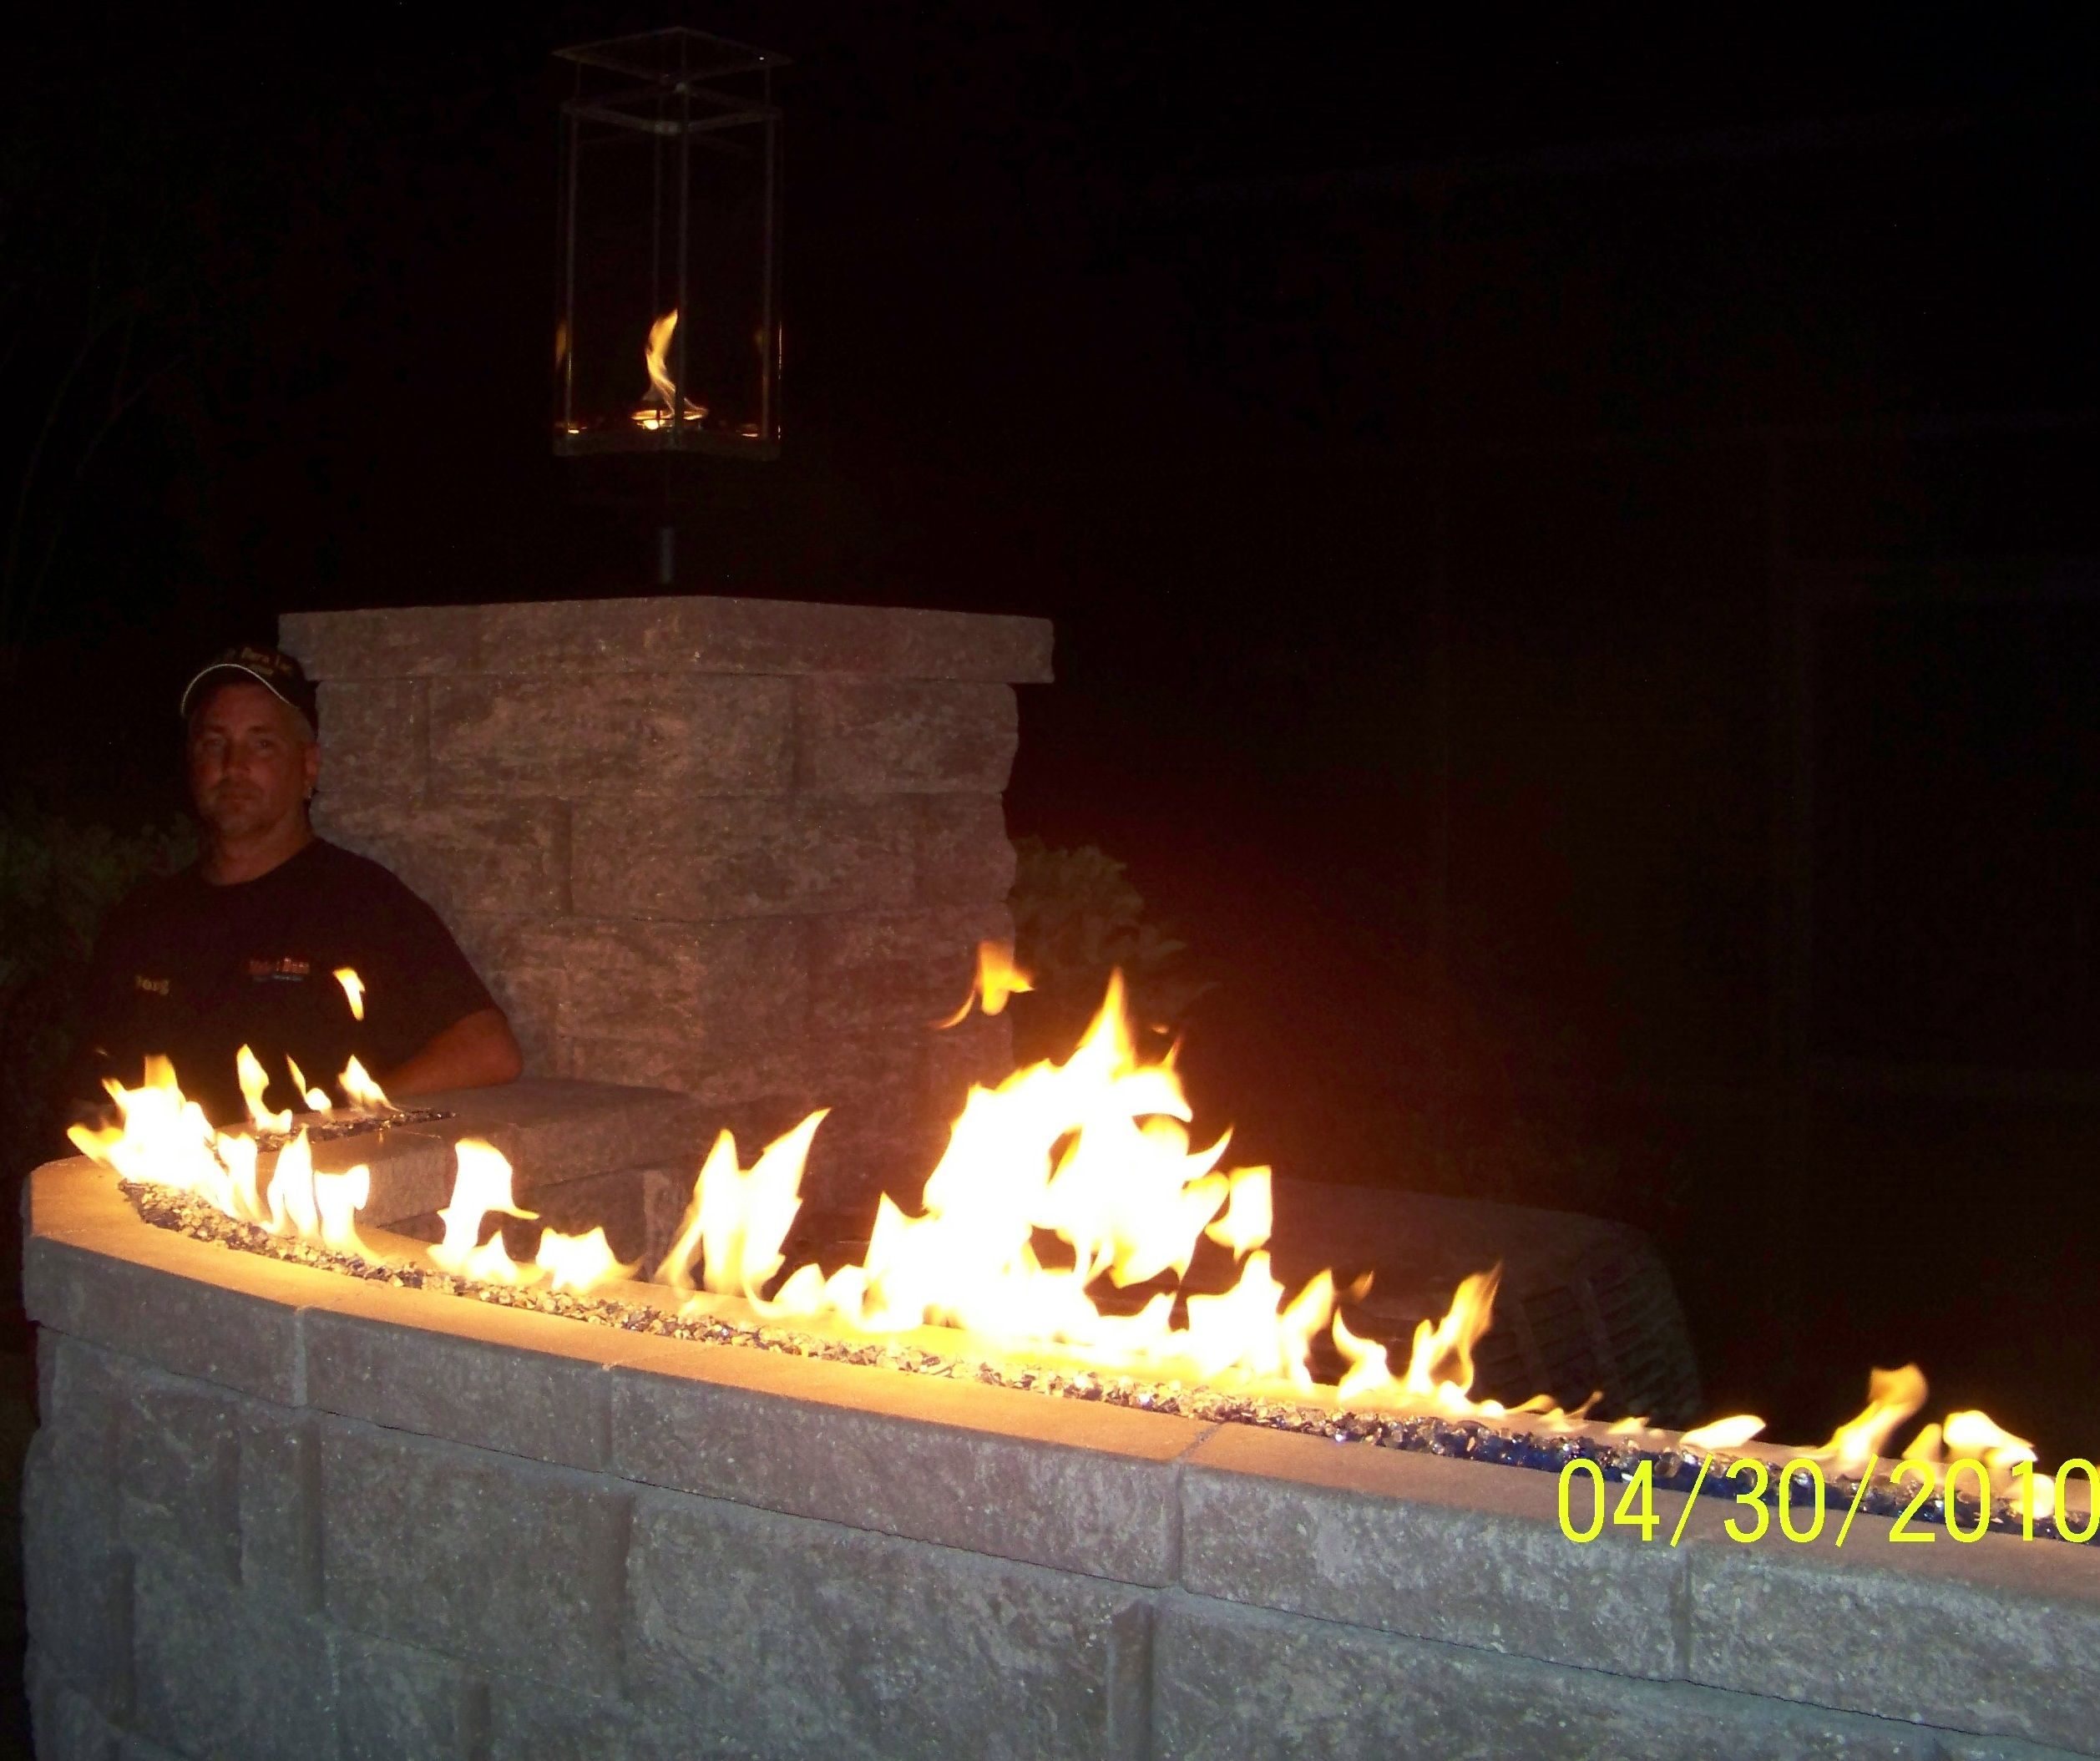 Fire Wall And Tornado Torch Gas Firepit Spa Heater Gas Fires